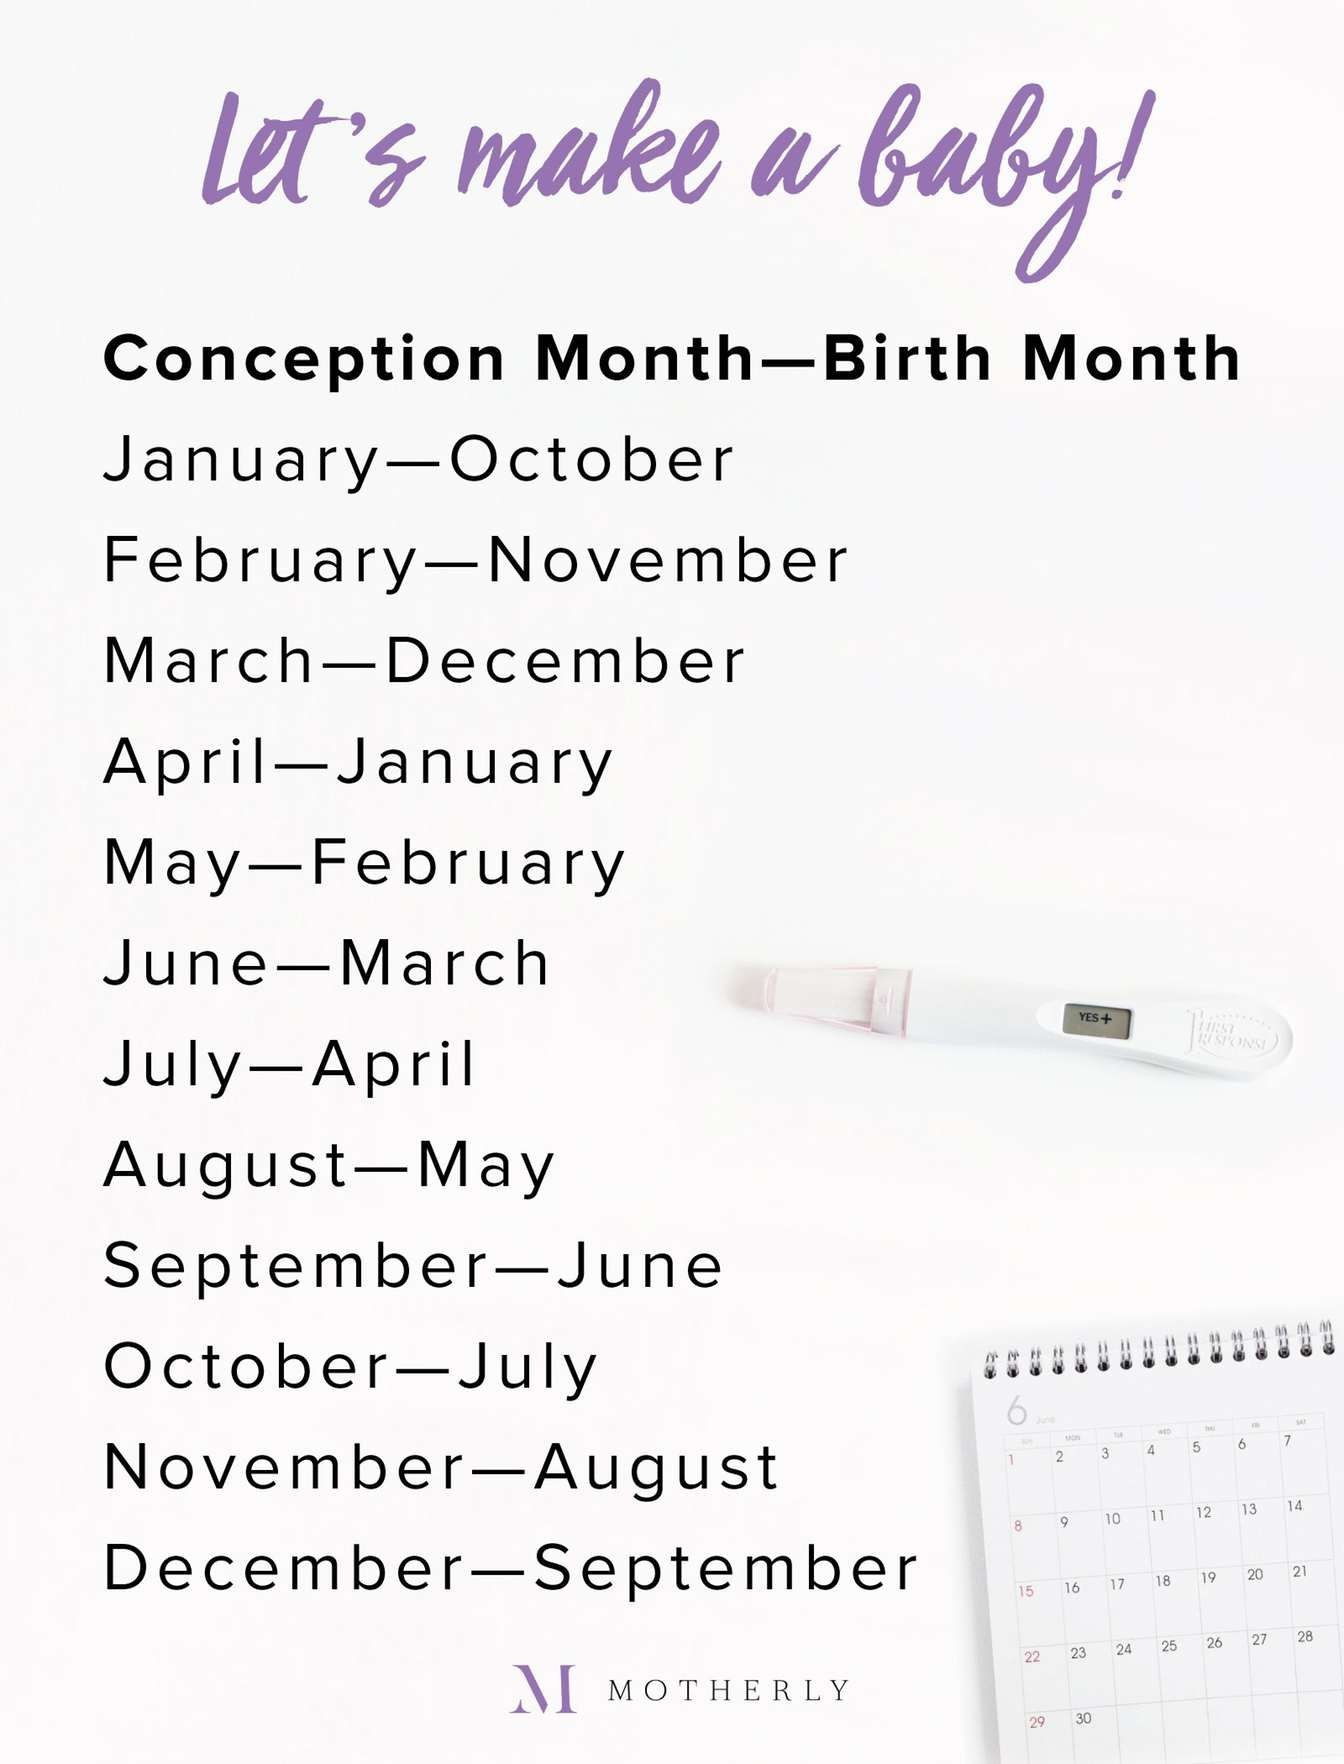 January February March Calendar Más Caliente What Month Will My Baby Be Born Due Date Graphic Calculator Of January February March Calendar Más Caliente Baptism Seminar for Parents and Godparents Our Lady Of Peace